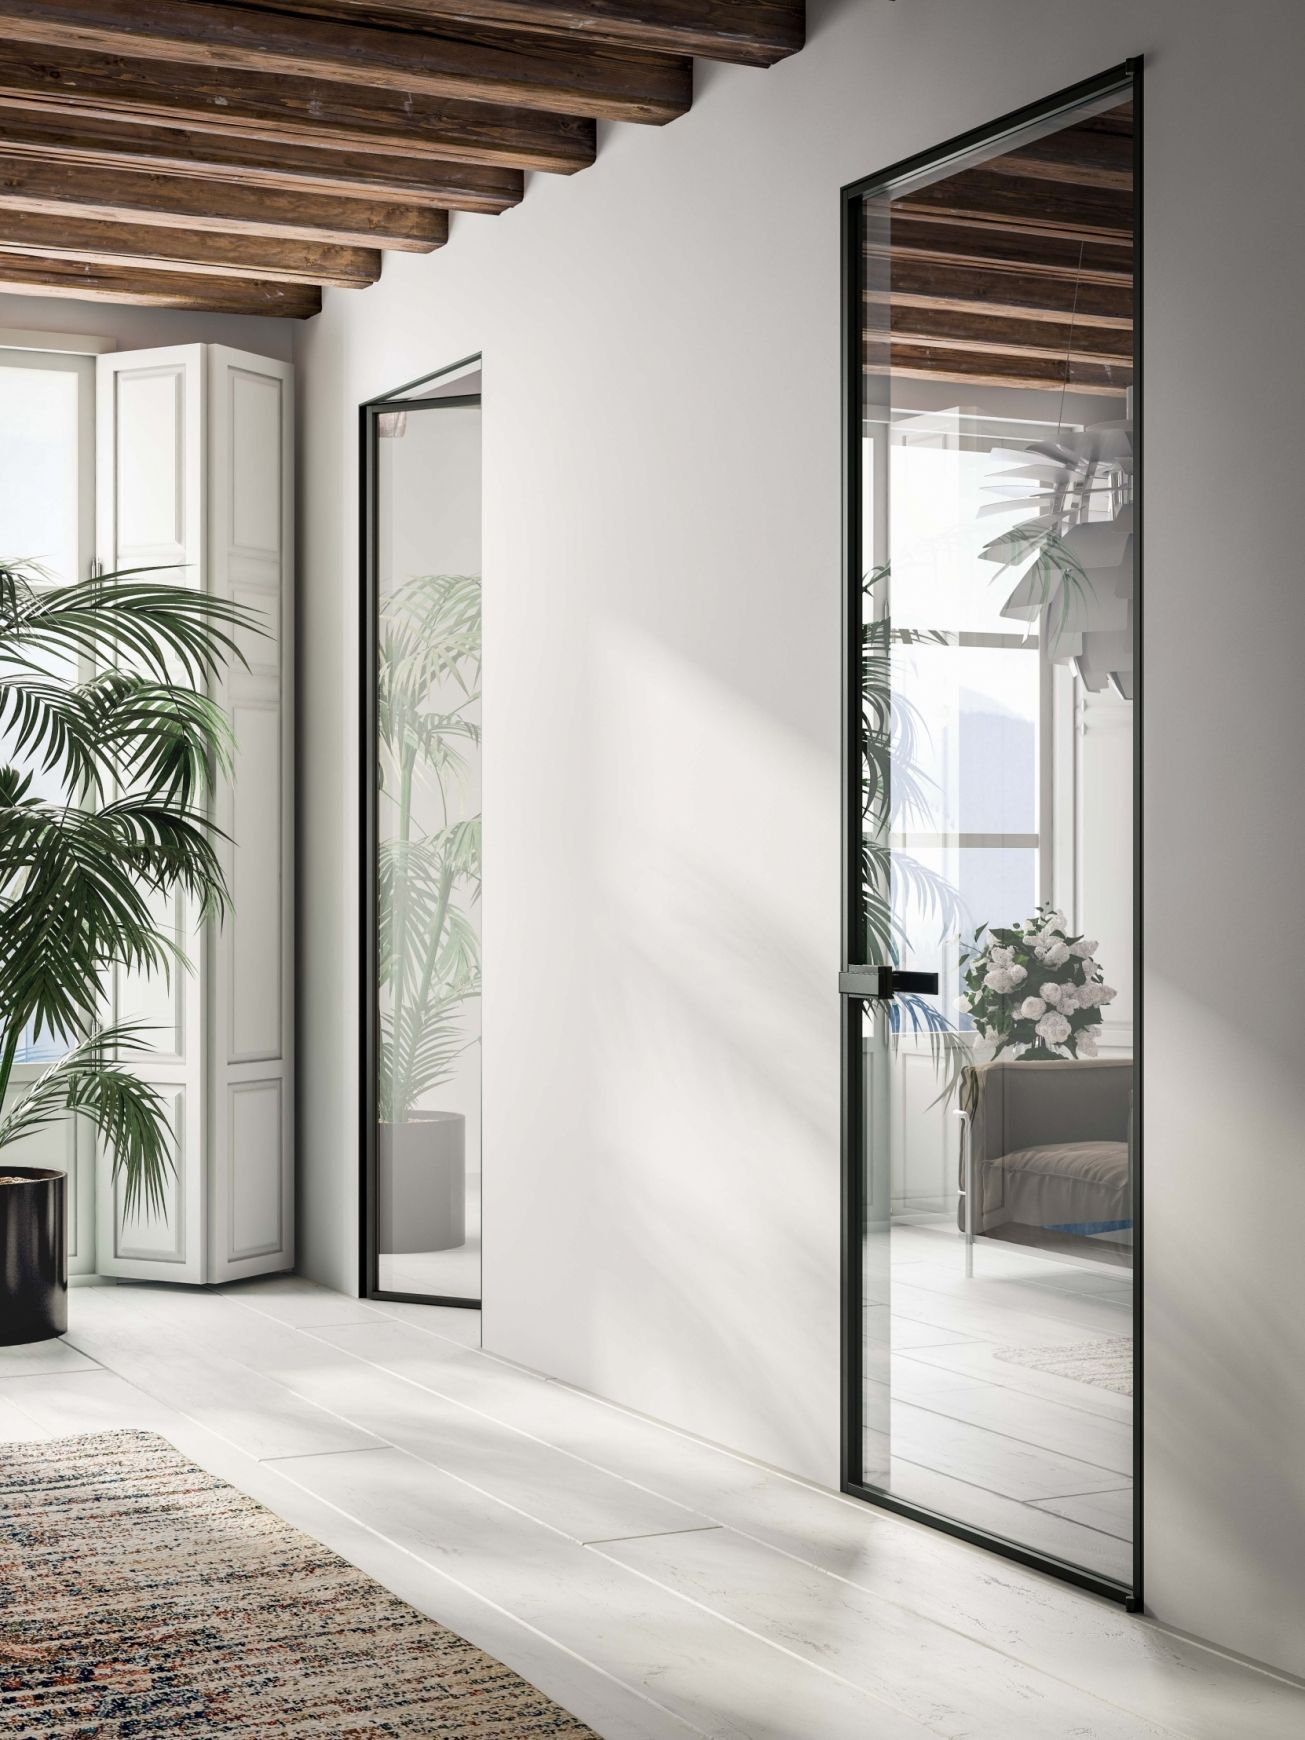 The Mitika Internal Door is a beautiful glass internal door system ...